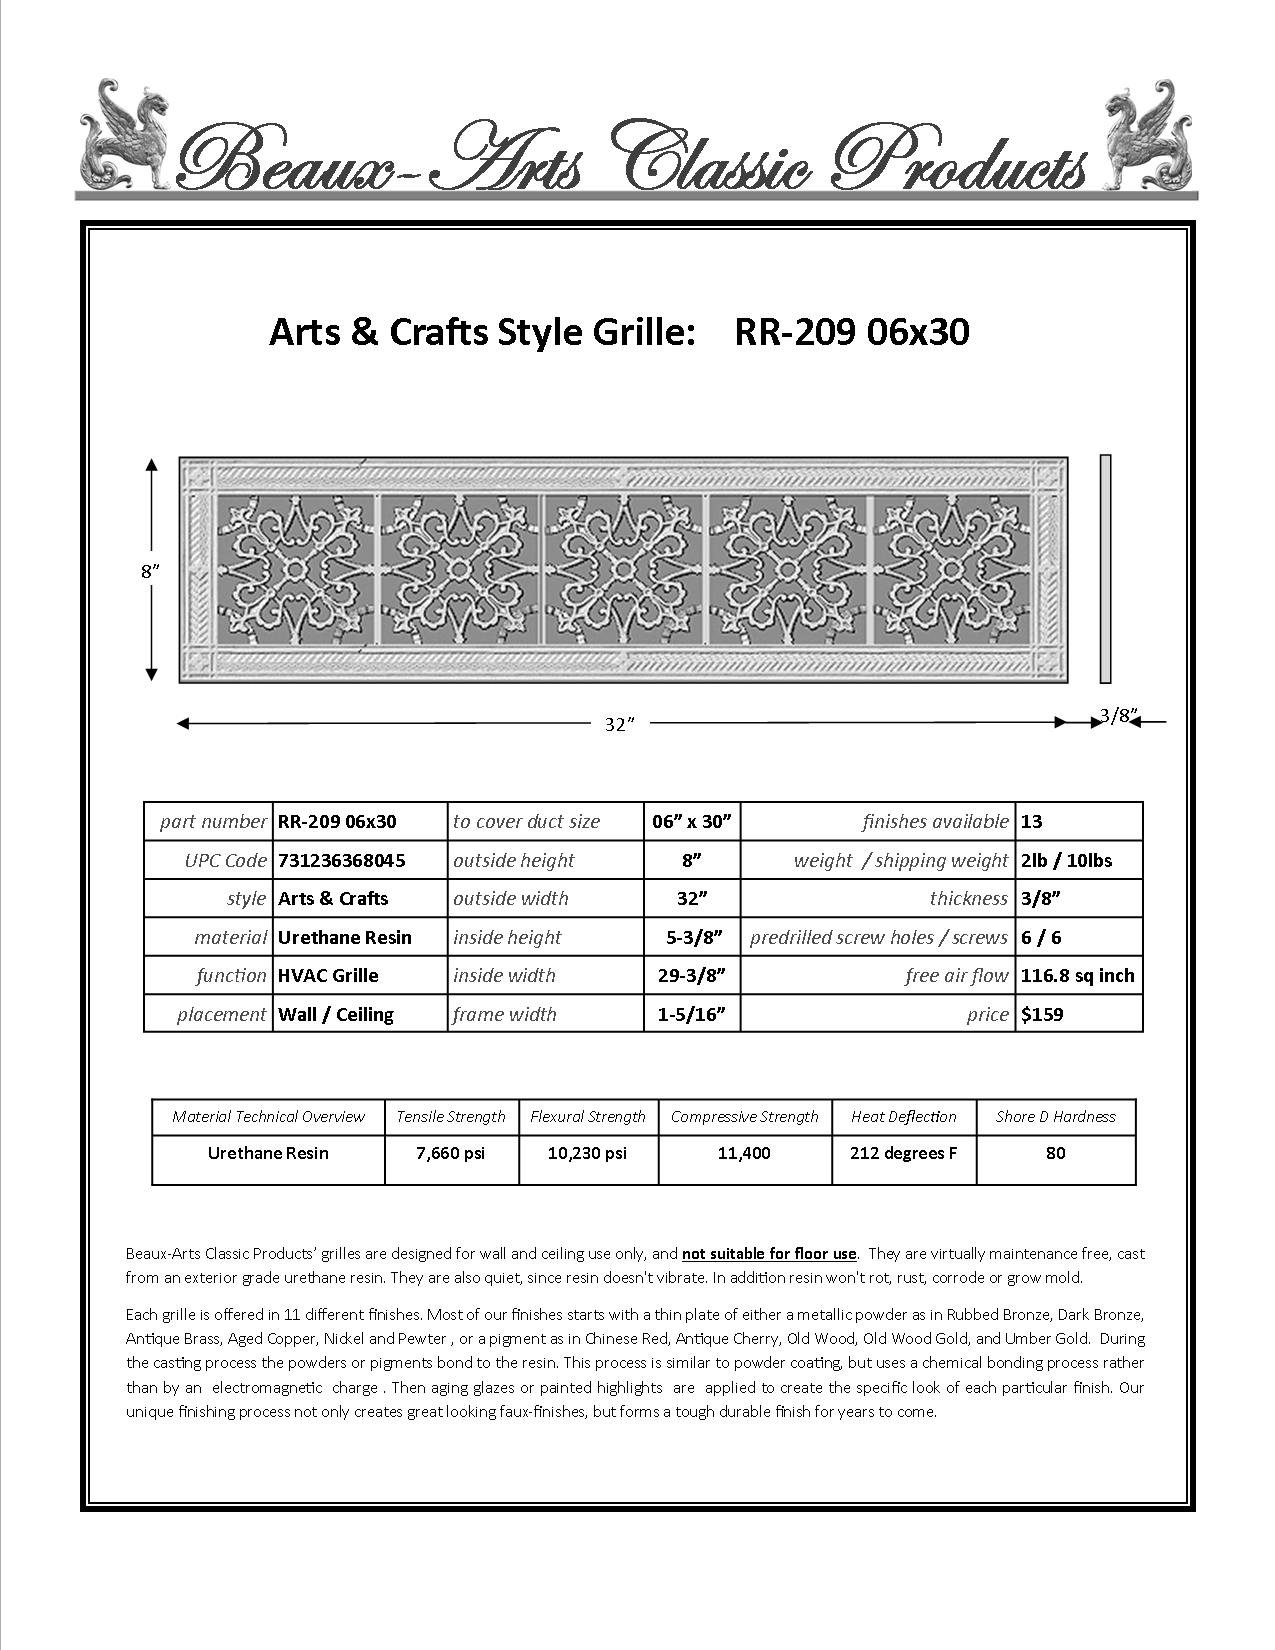 Decorative Grille, Vent Cover, or Return Register. Made of Urethane Resin to fit over a 6''x30'' duct or opening. Total size of vent is 8''x32''x3/8'', for wall and ceiling grilles (not for floor use).